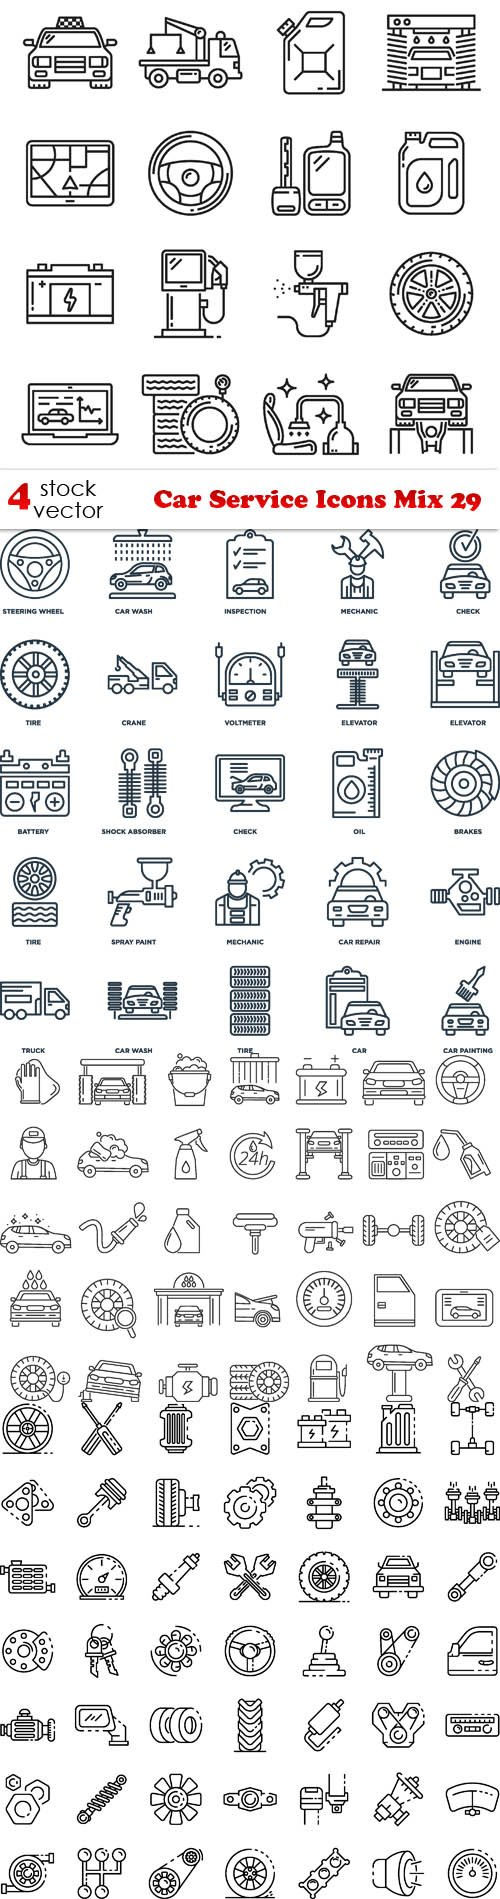 Vectors - Car Service Icons Mix 29